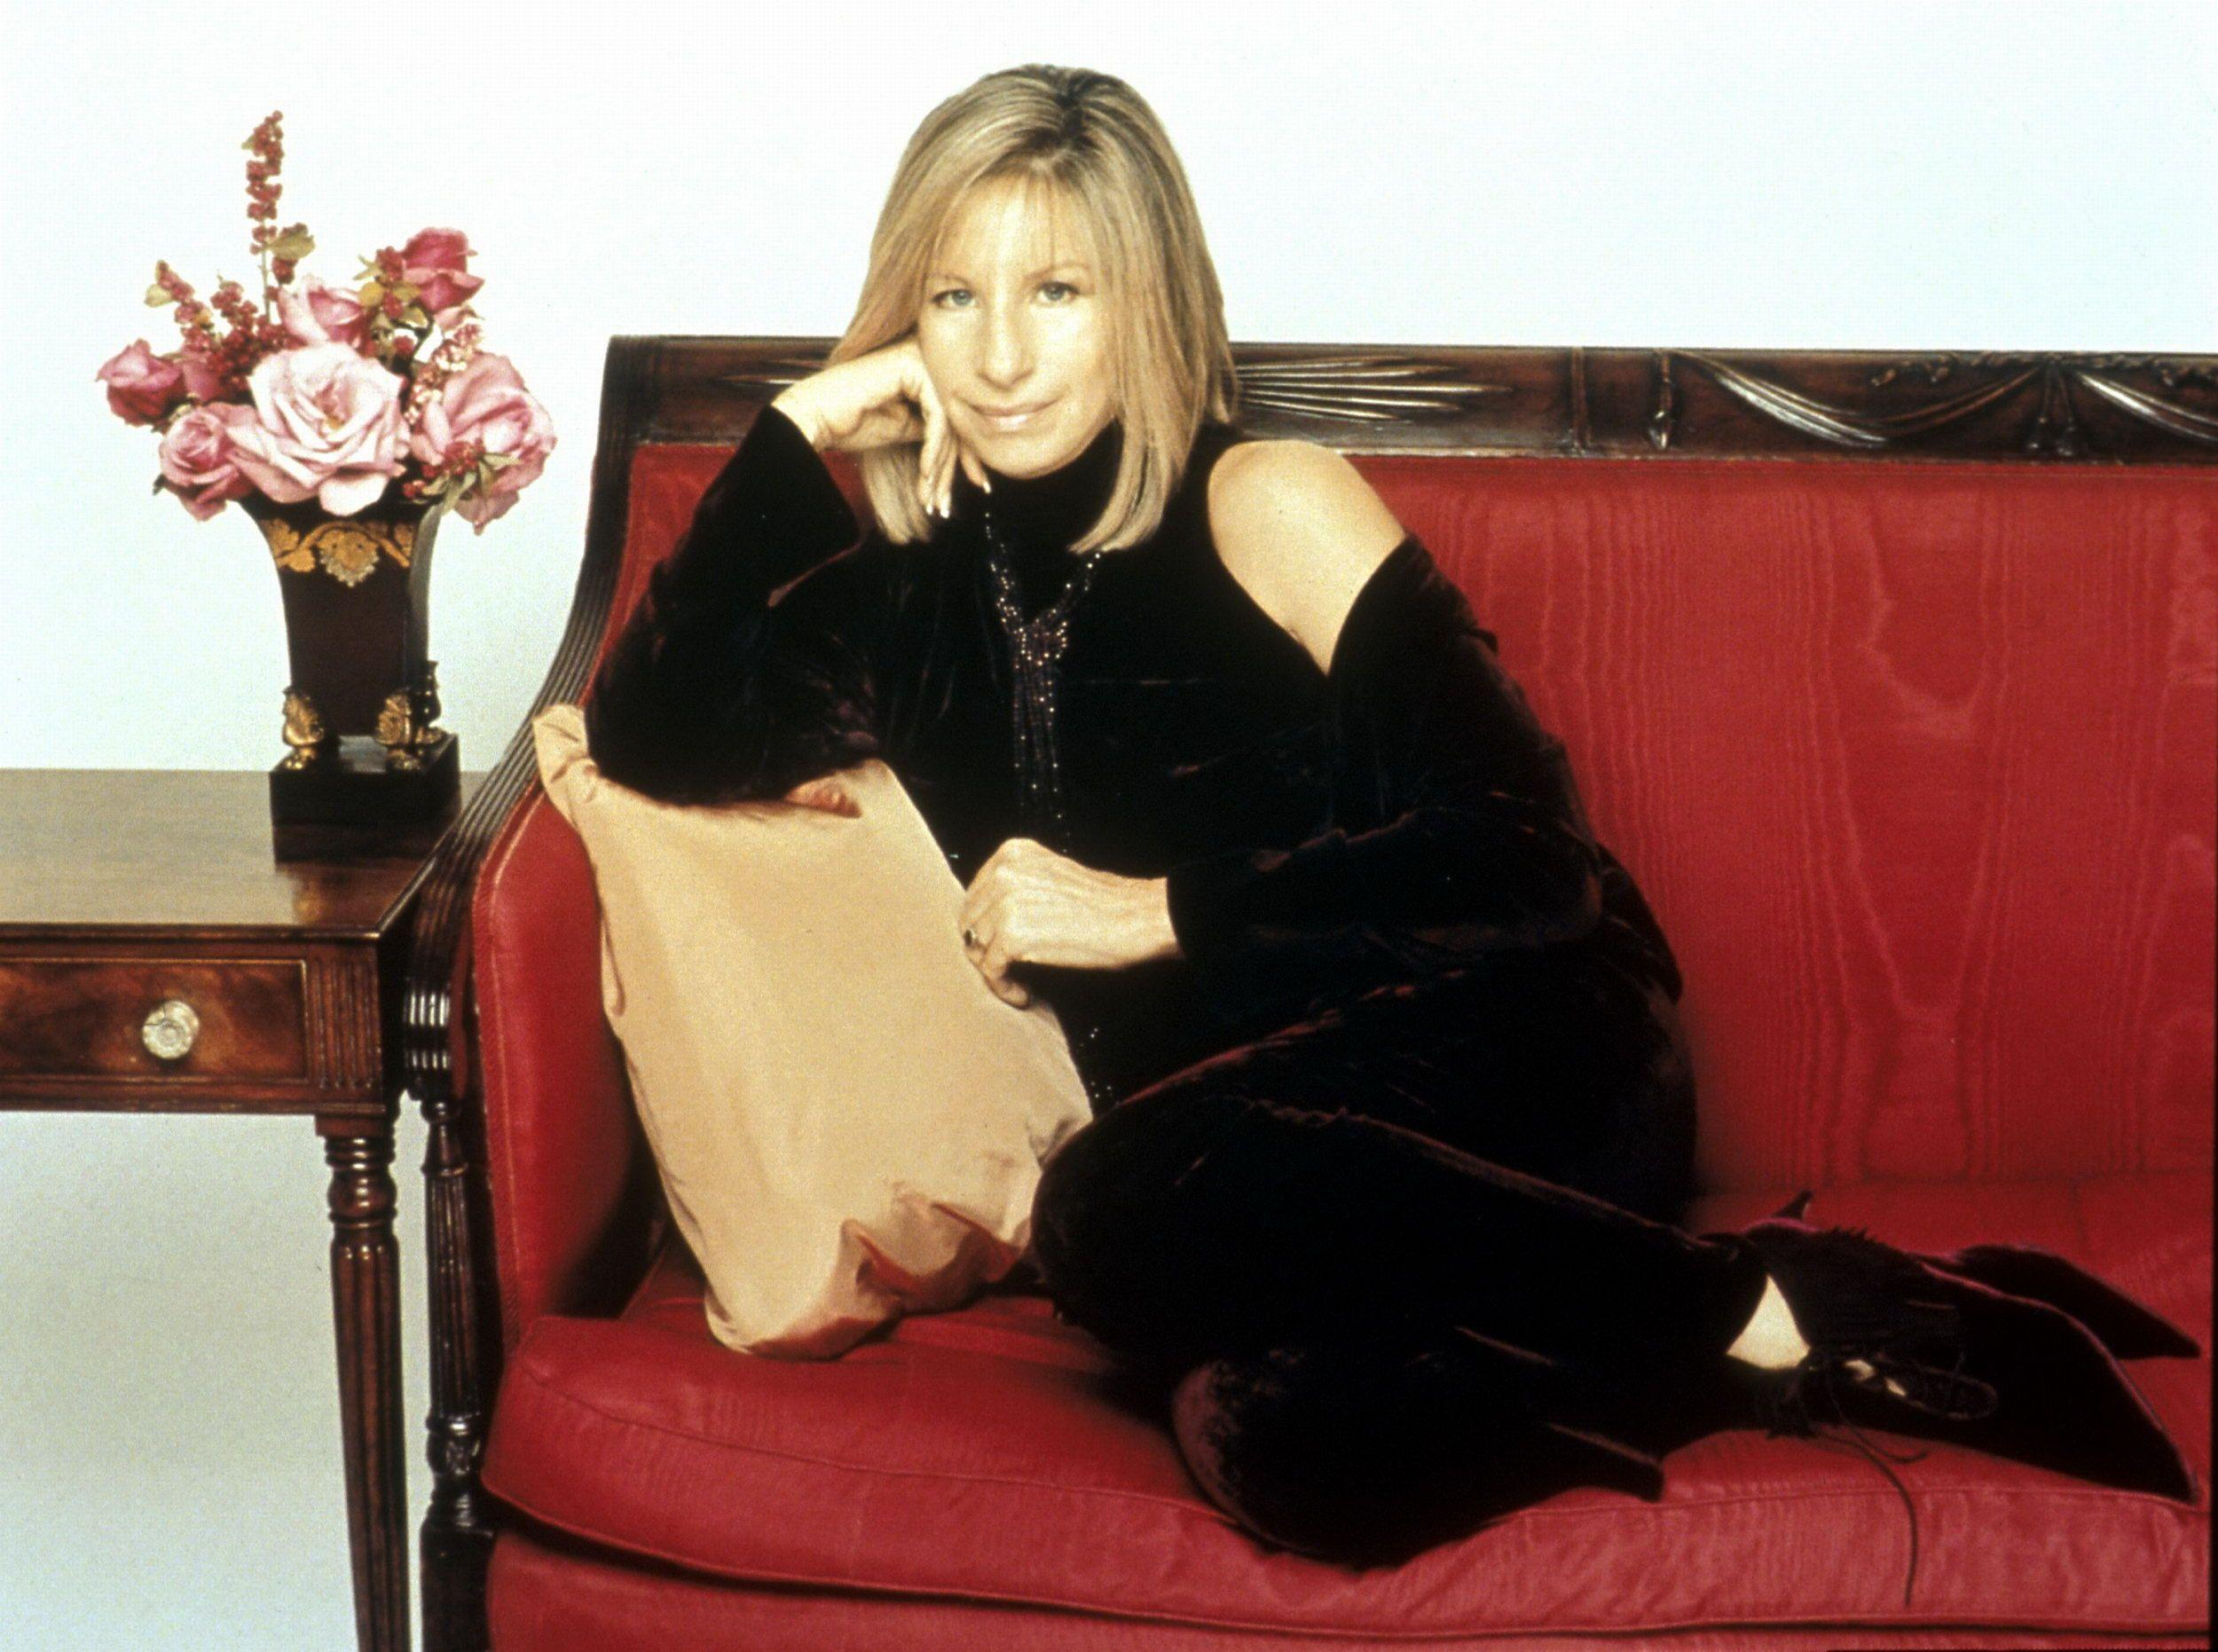 Barbra Streisand photo 21 of 52 pics, wallpapers